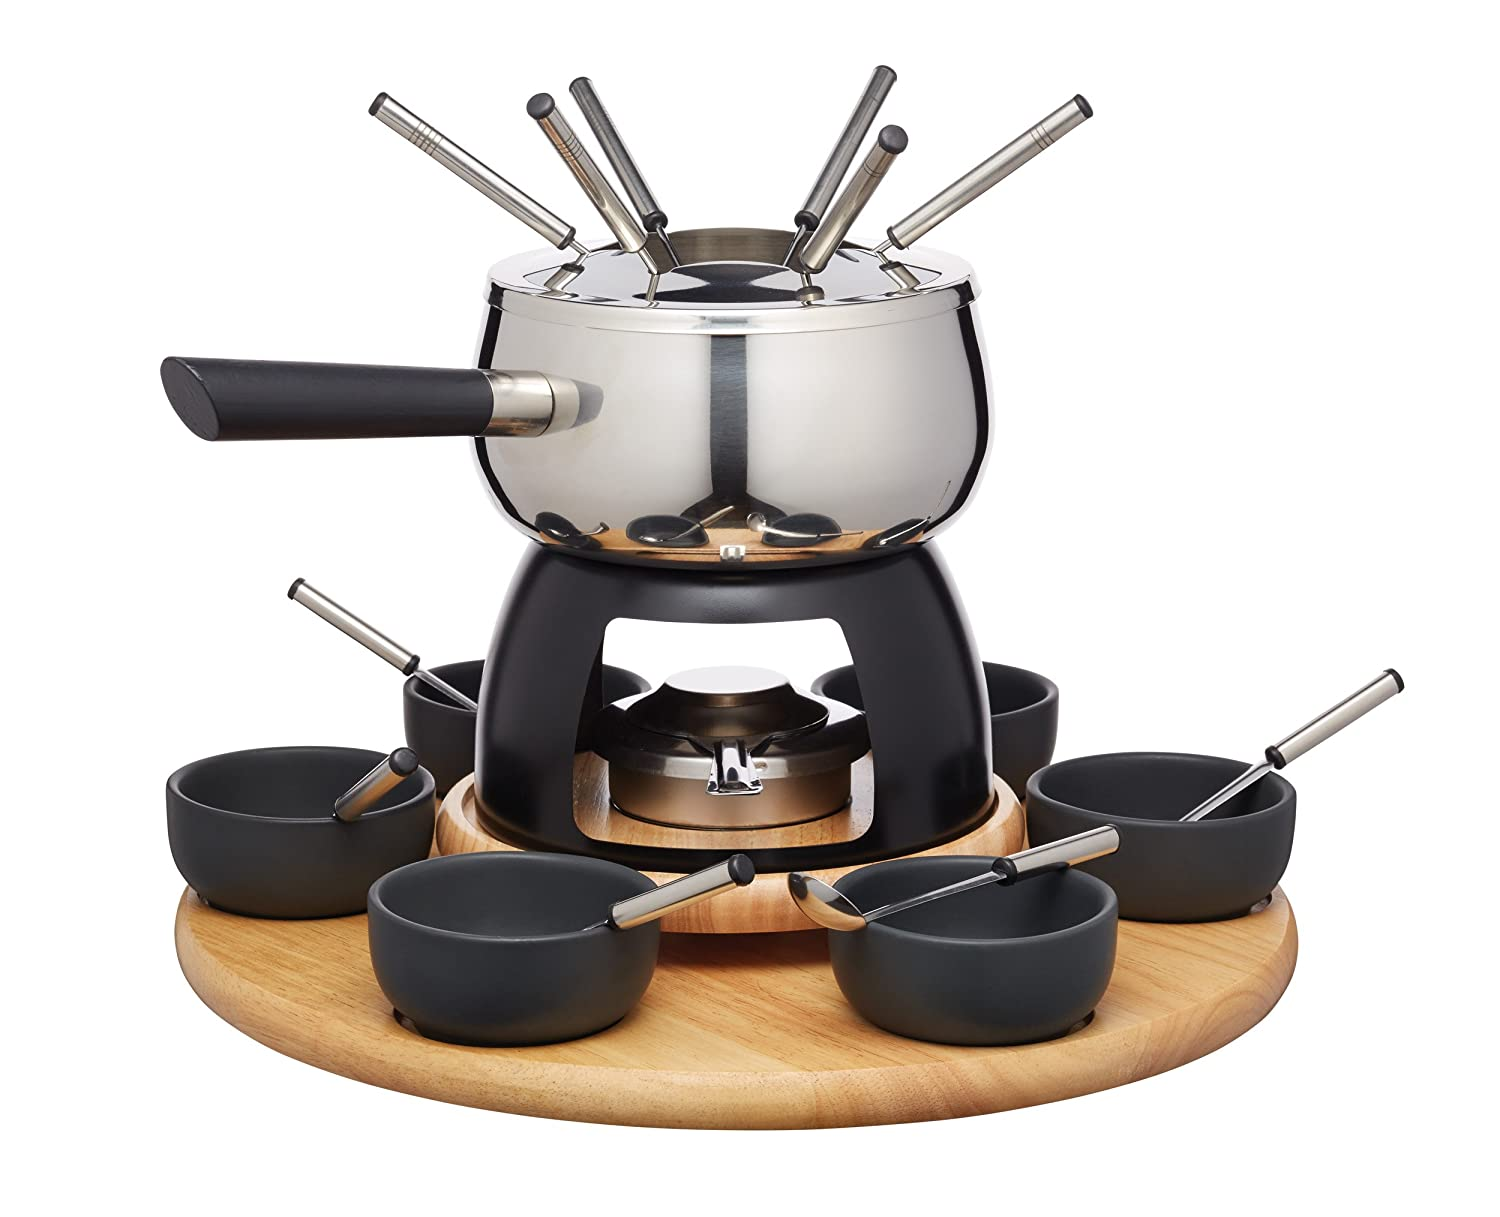 Artesà Deluxe Stainless Steel Swiss Fondue Set with Lazy Susan (22-Piece Party Kit) Kitchen Craft ARTFONPARTY